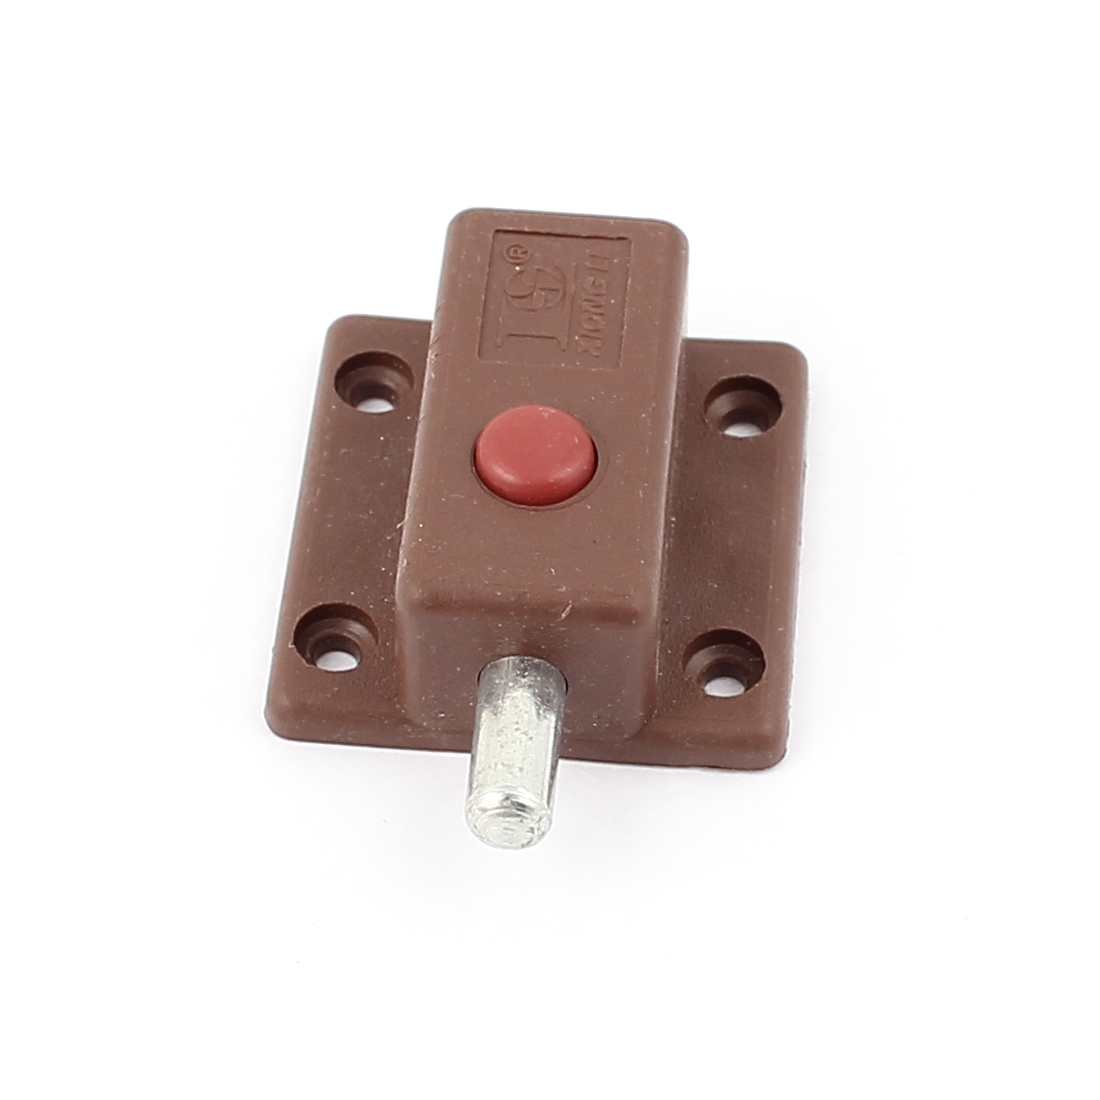 Round Push Button Control Cupboard Door Latch Lock Barrel Bolt